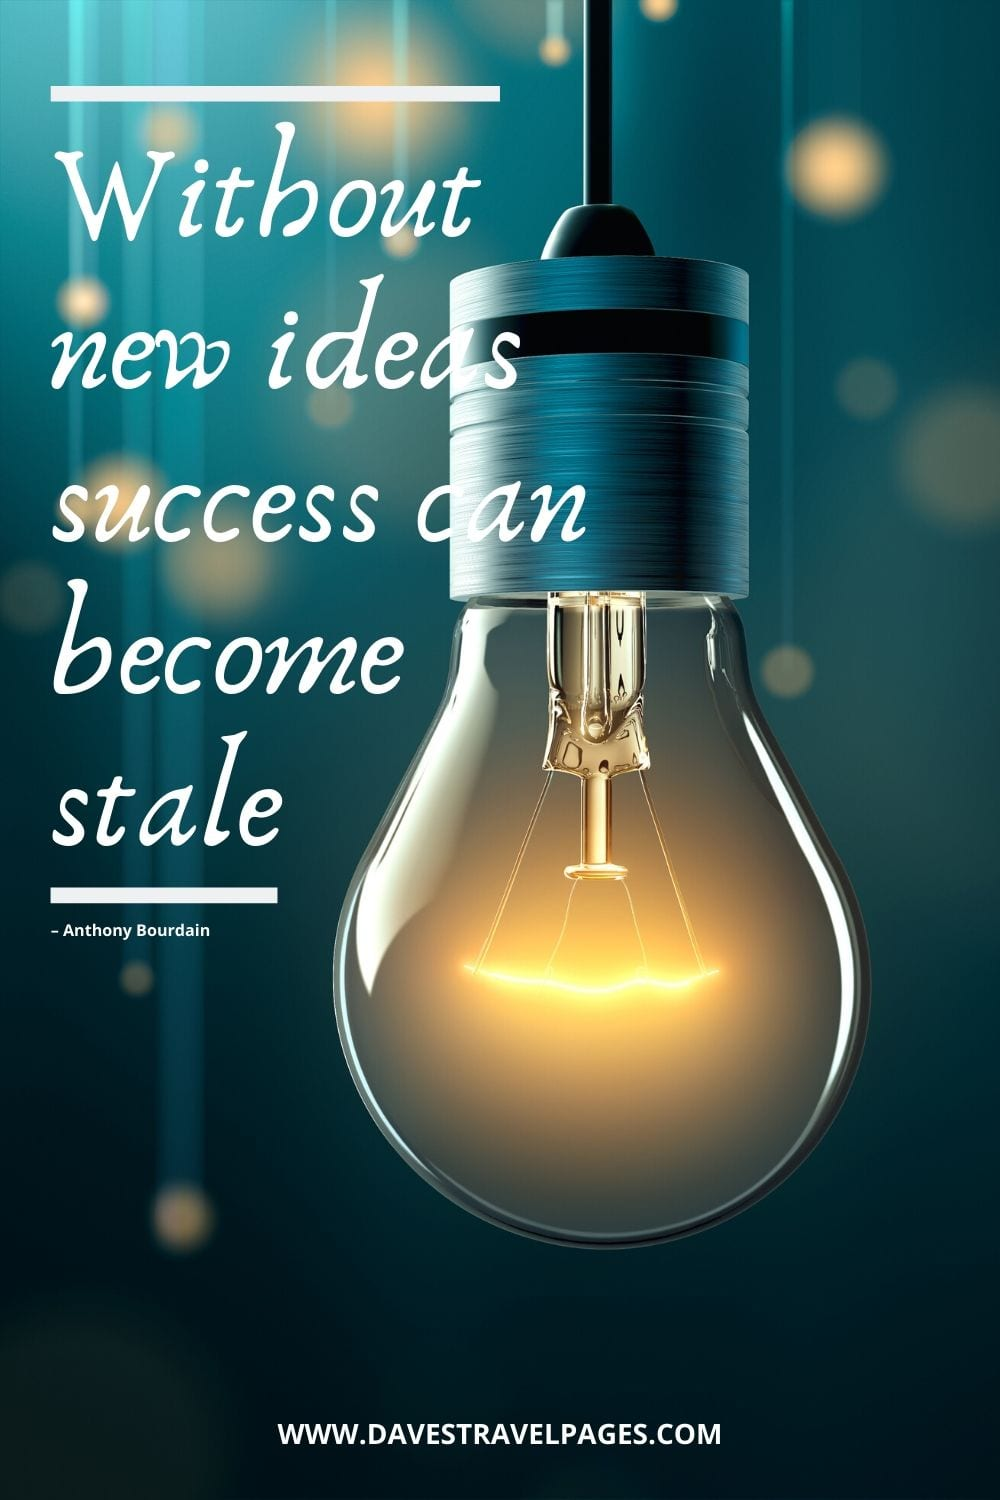 """""""Without new ideas success can become stale."""" – Anthony Bourdain"""